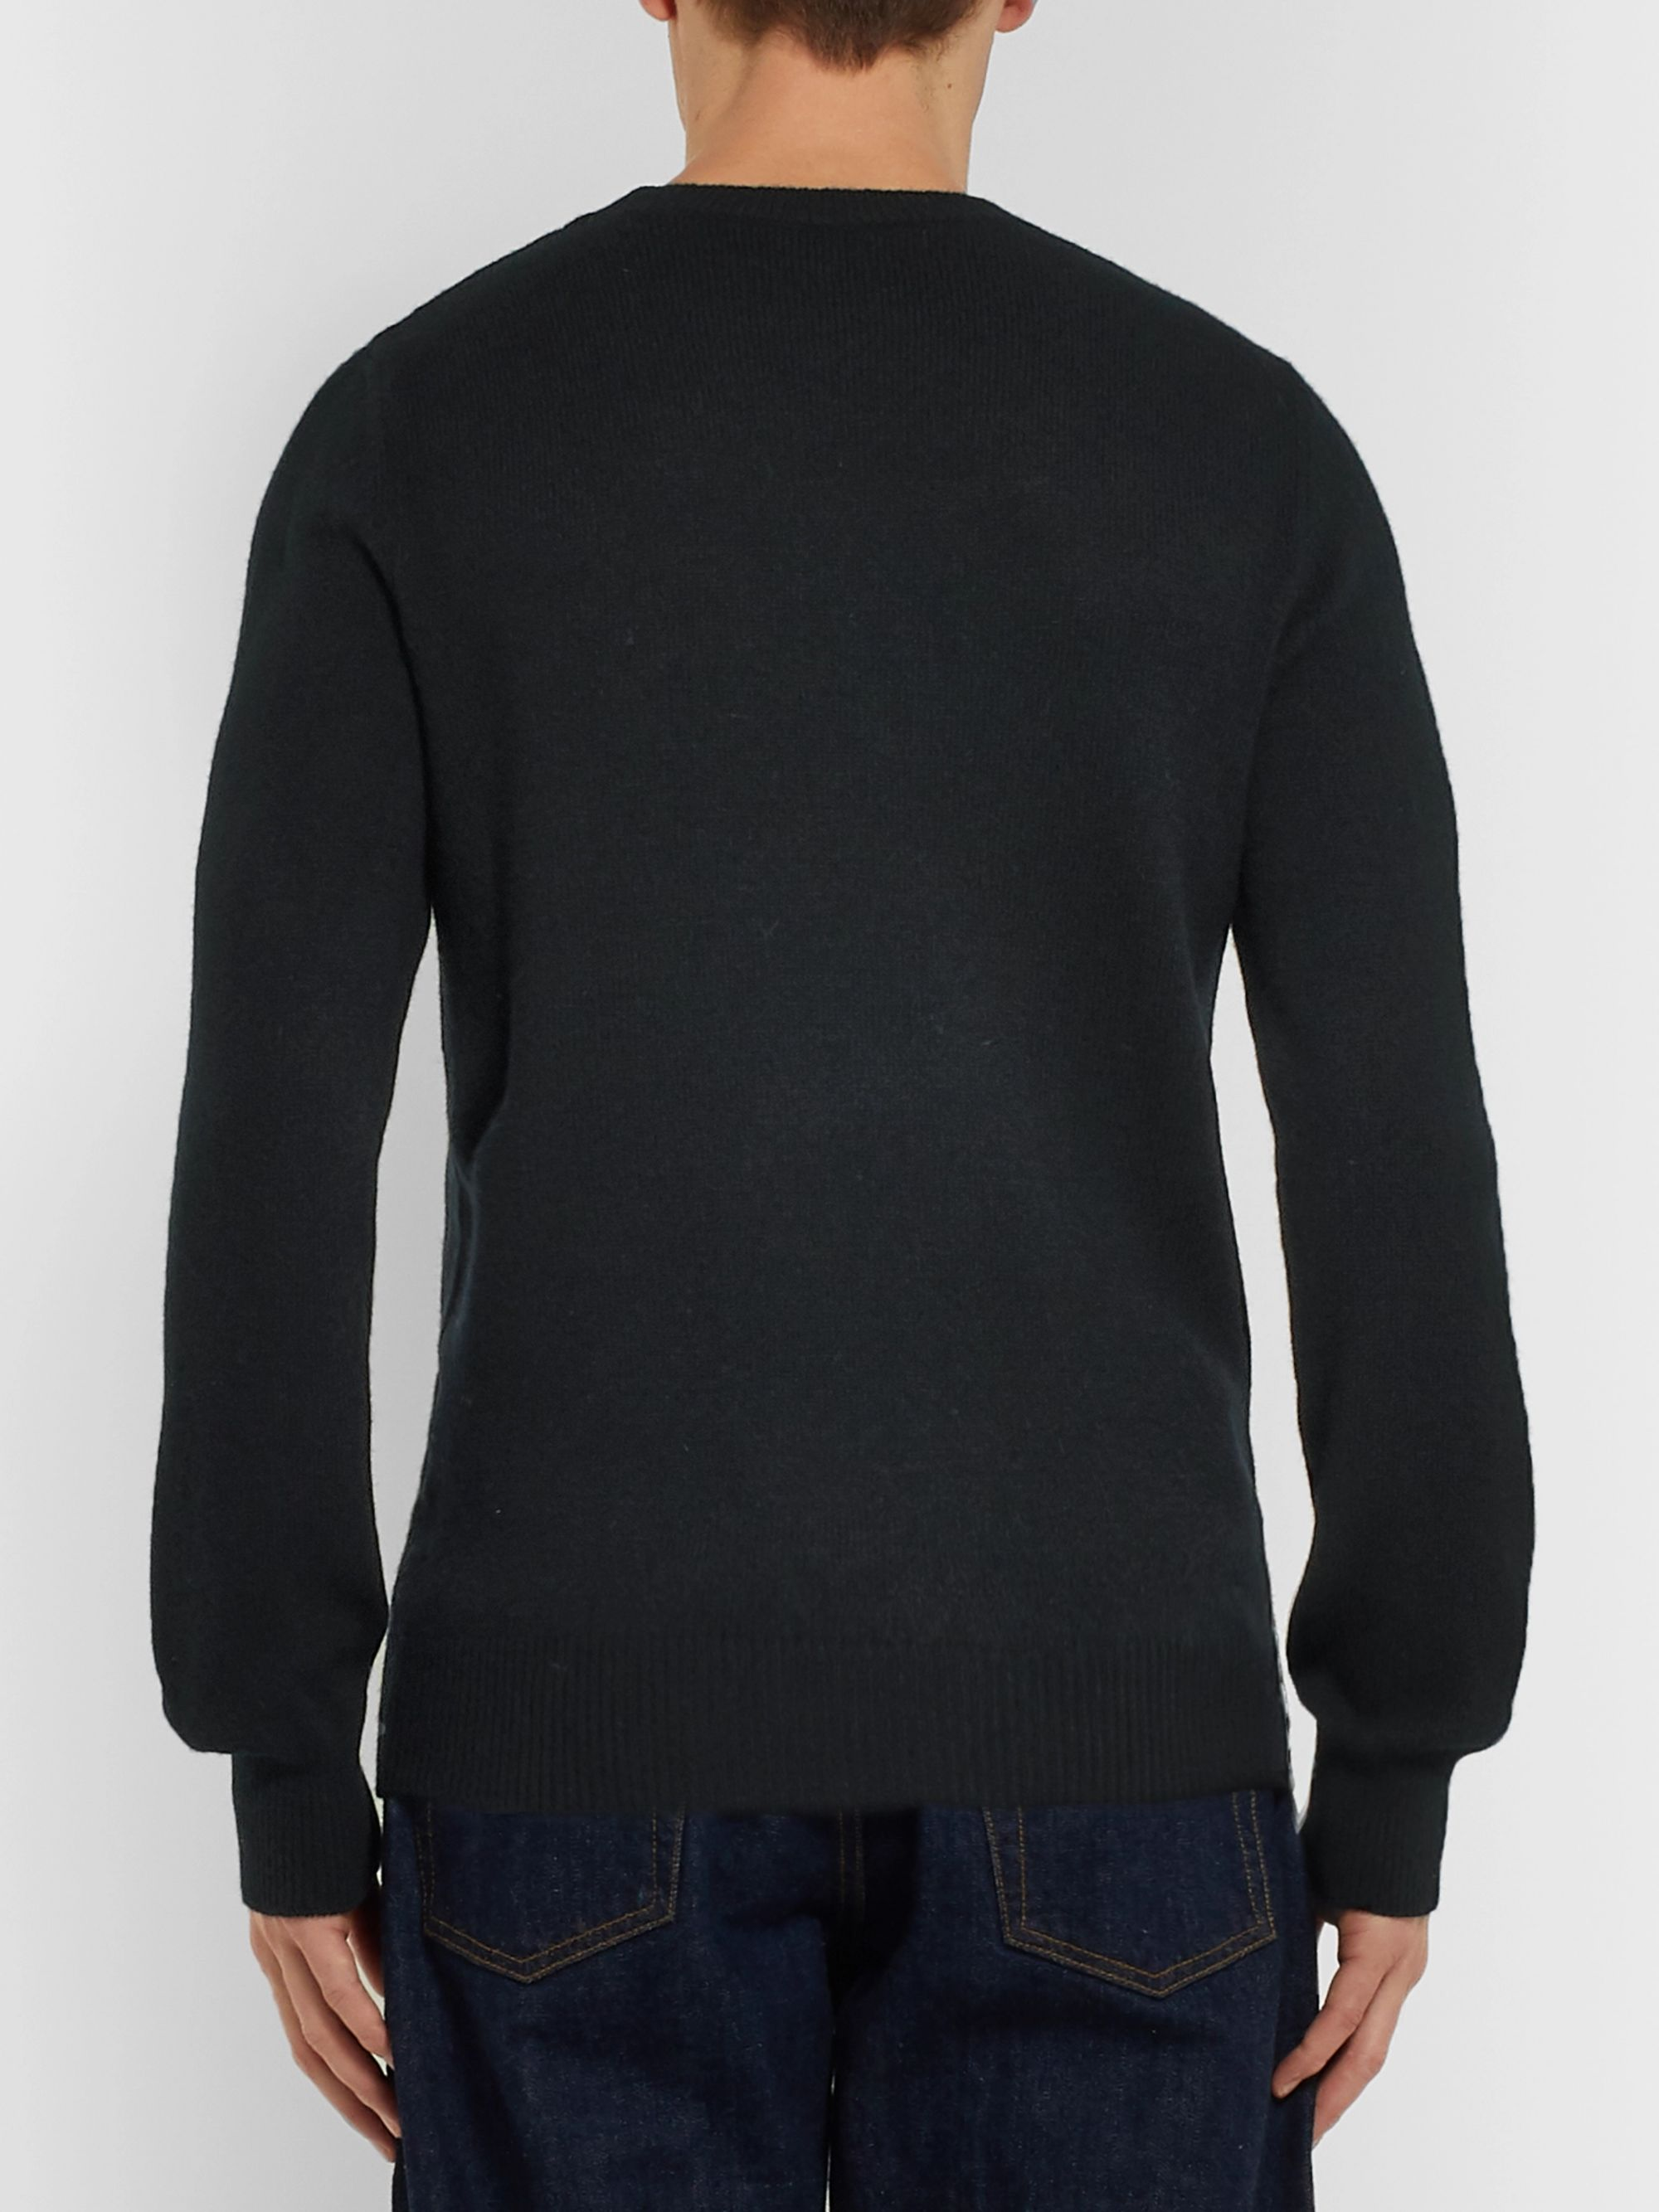 A.P.C. Colin Wool and Cotton-Blend Sweater